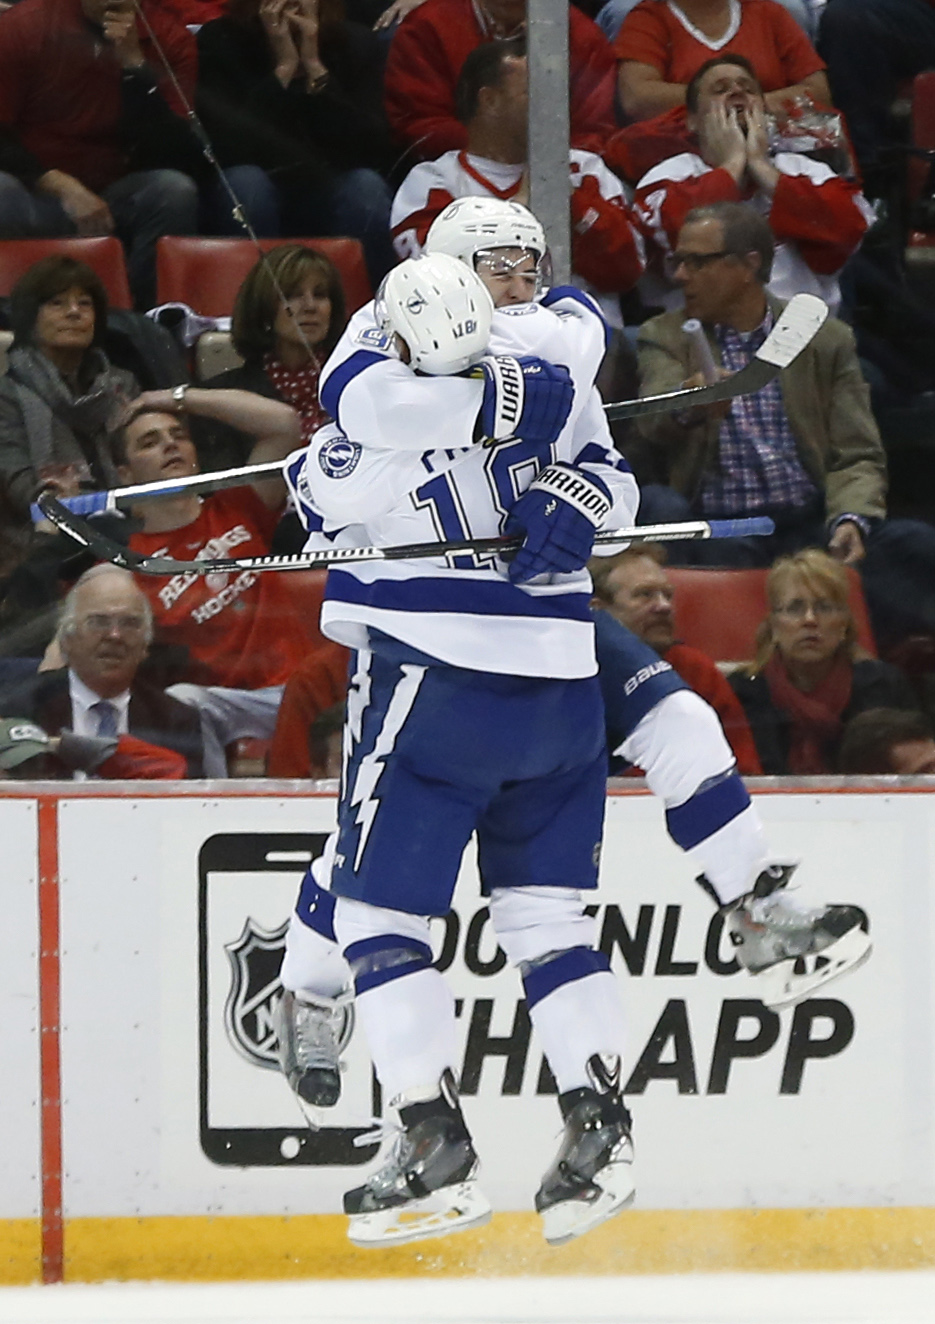 Tampa Bay Lightning center Tyler Johnson, facing, celebrates his goal against the Detroit Red Wings with Ondrej Palat in the second period of Game 6 of a first-round NHL Stanley Cup hockey playoff series, Monday, April 27, 2015, in Detroit. (AP Photo/Paul